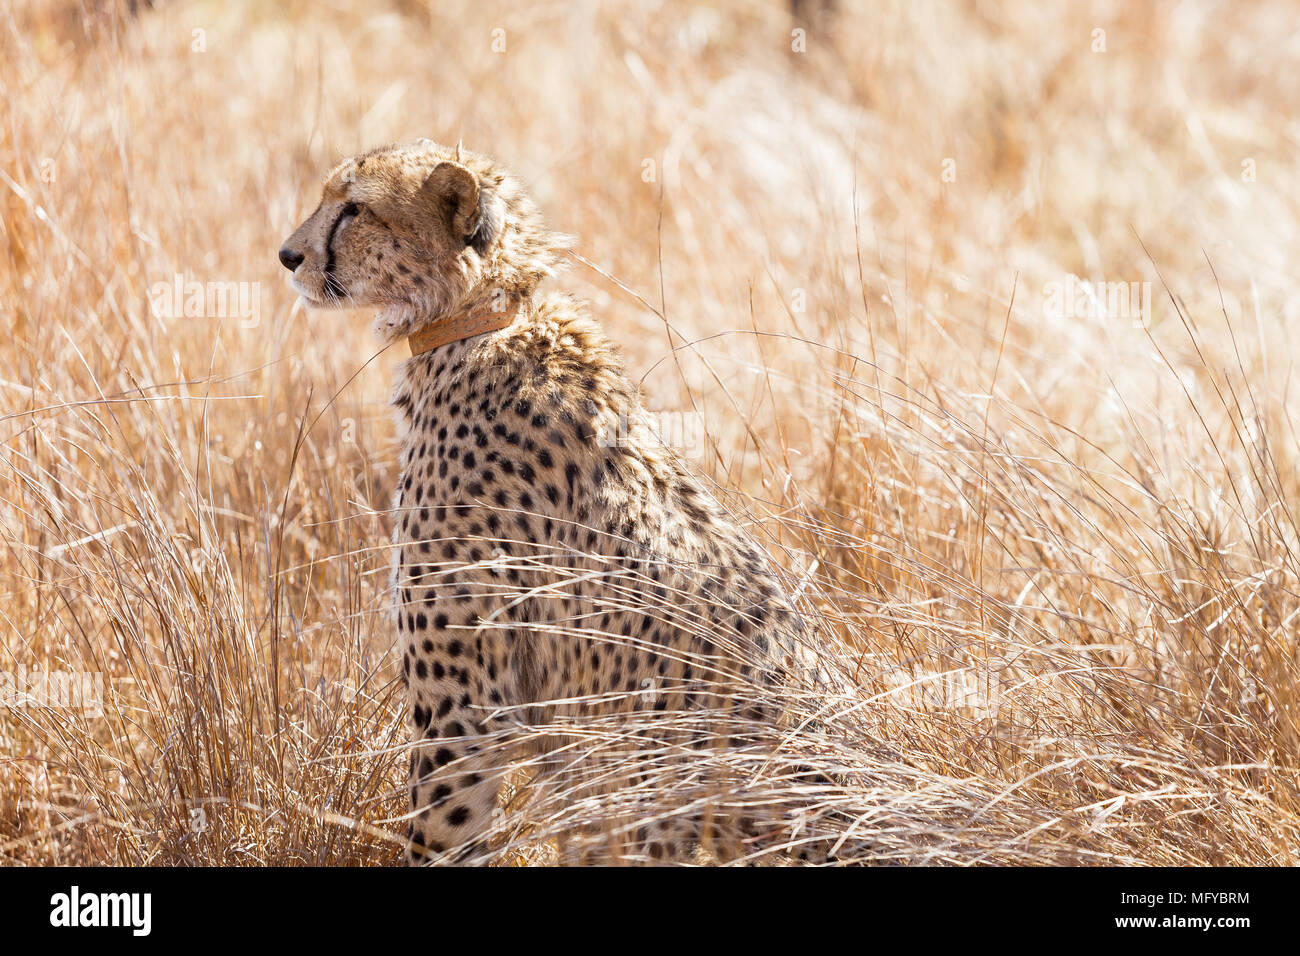 Photographed on safari in a South African game reserve. Notice the Cheetah has a tracking collar around its neck - used for conservation purposes - Stock Image